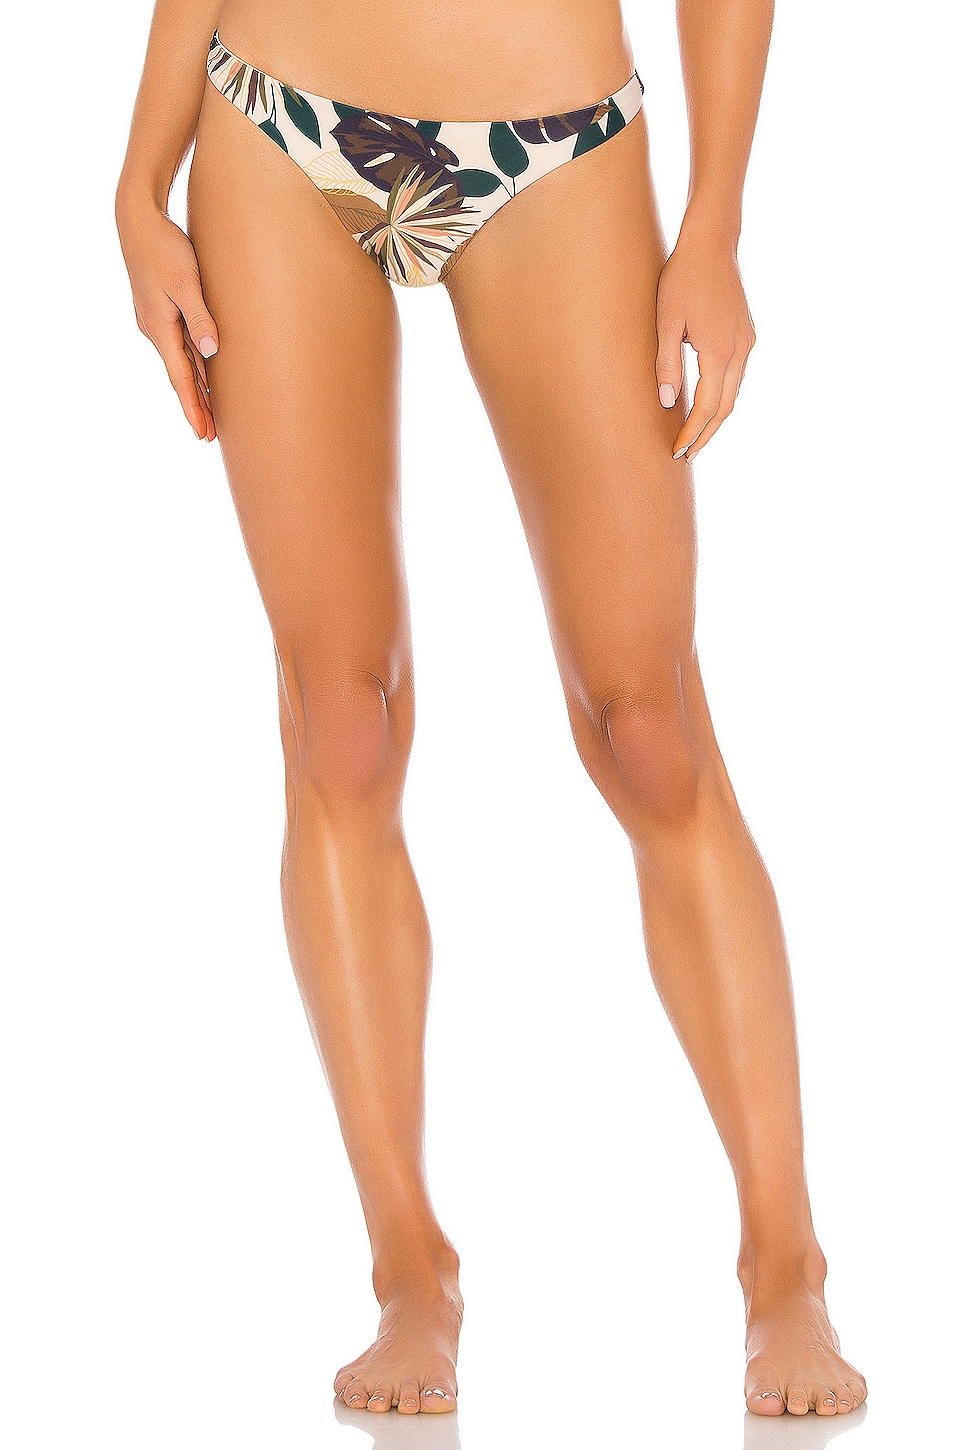 L*SPACE Camacho Classic Bottom in Lotus Land Floral